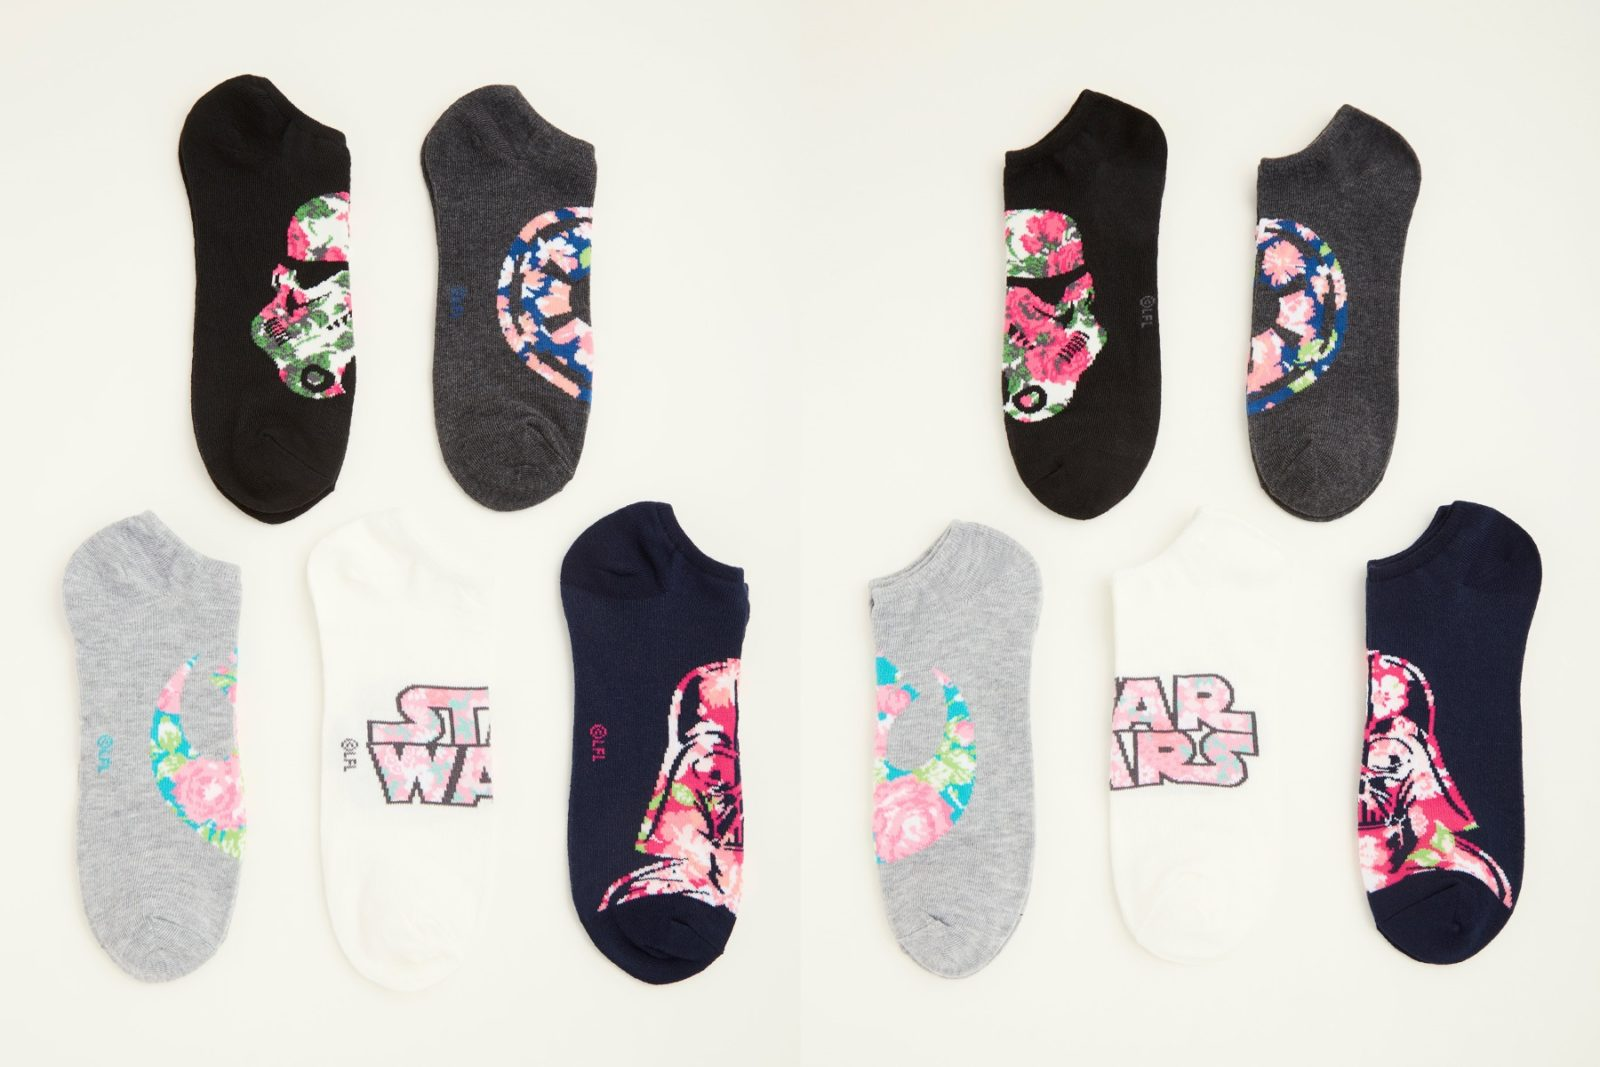 Women's Star Wars Floral Ankle Sock Pack